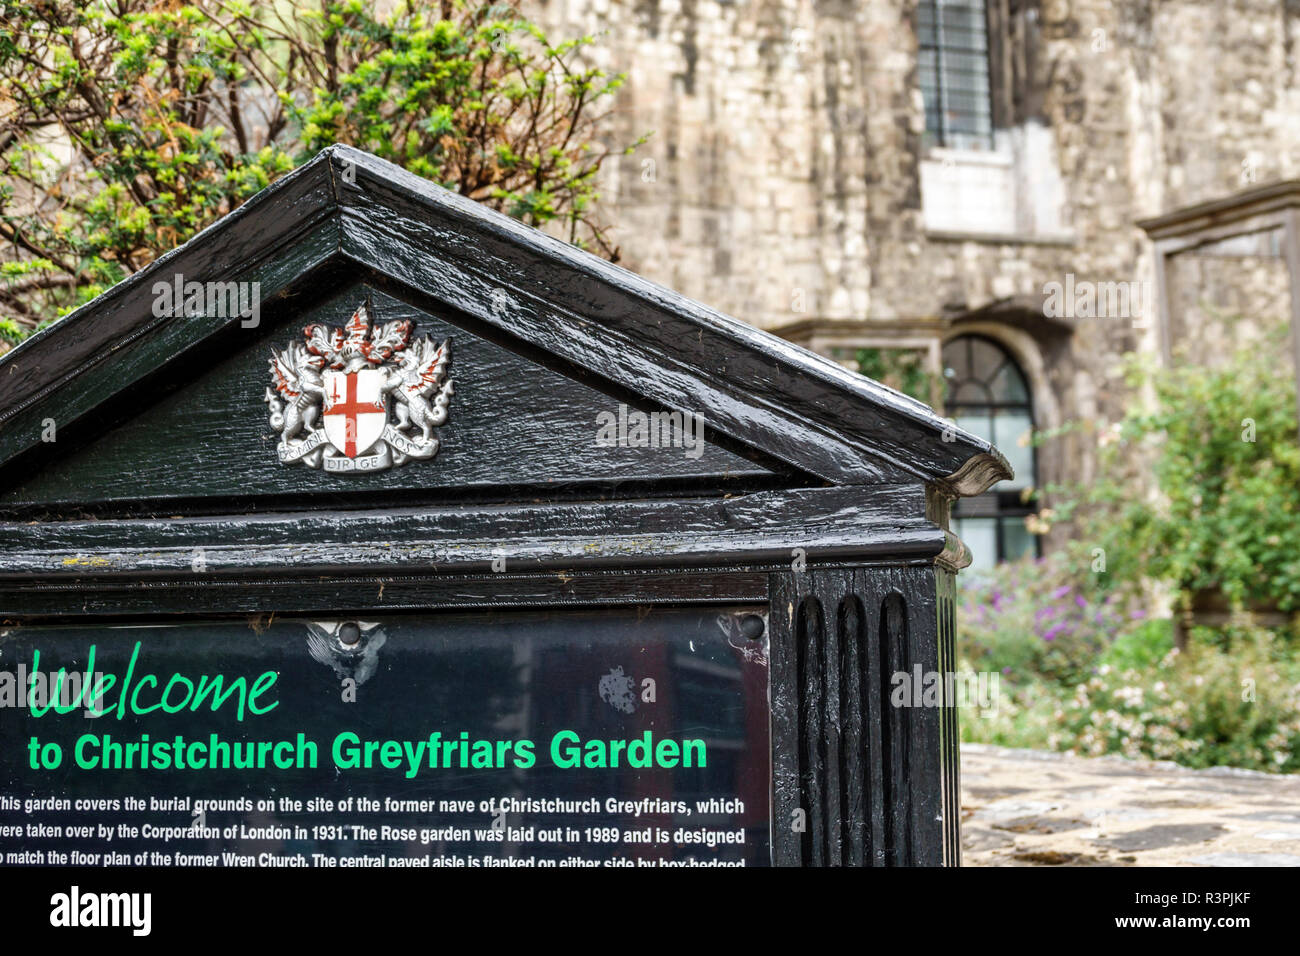 London England Great Britain United Kingdom City of London Christ Church Greyfriars ruins public garden welcome sign - Stock Image